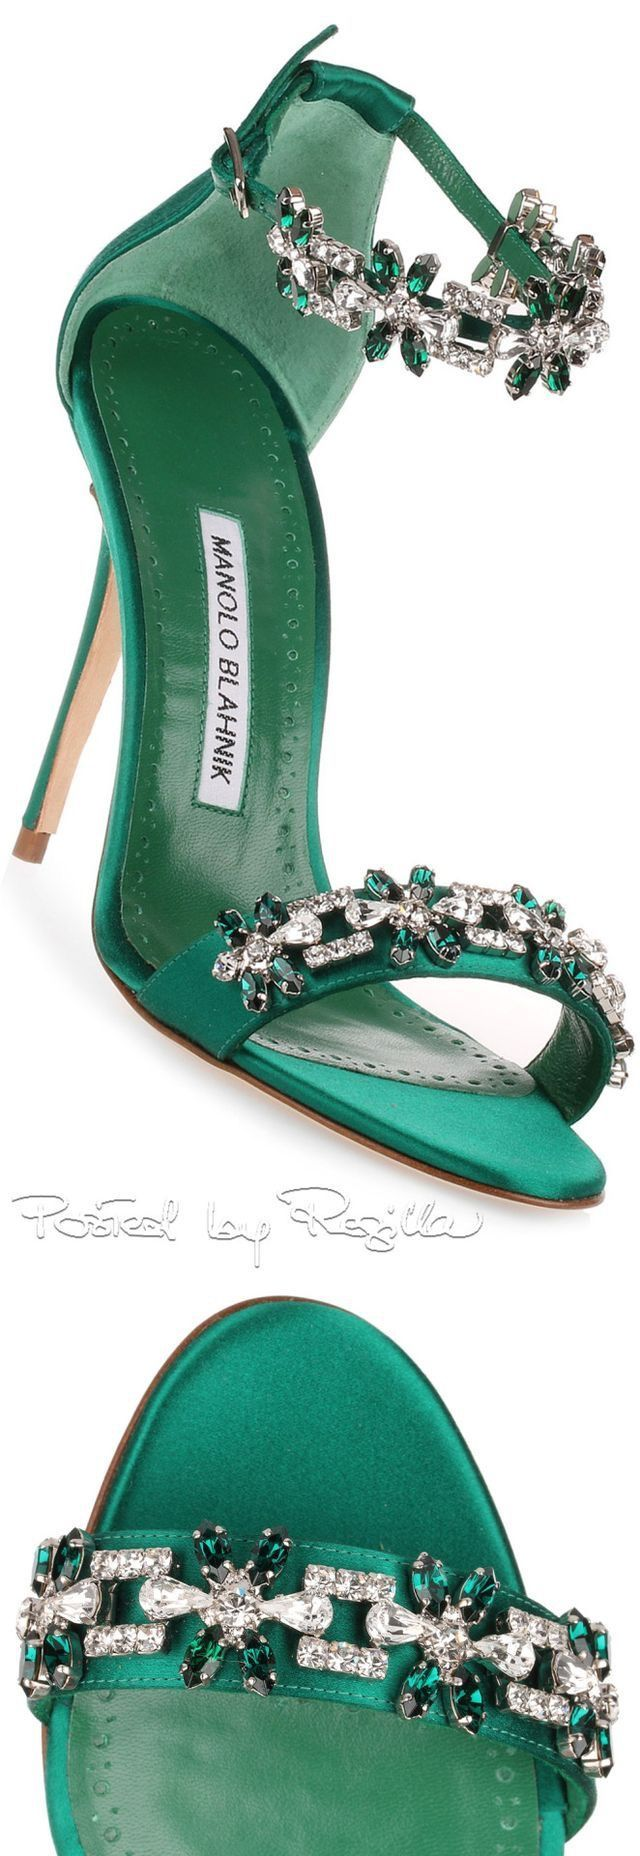 Yule style!! Noel Christmas New Year's Eve!! Green and White!! Glitter and shine in this tall sandals with a heel strap - perfect for dancing!! Find a silver dress! And dance! #manoloblahniksandals